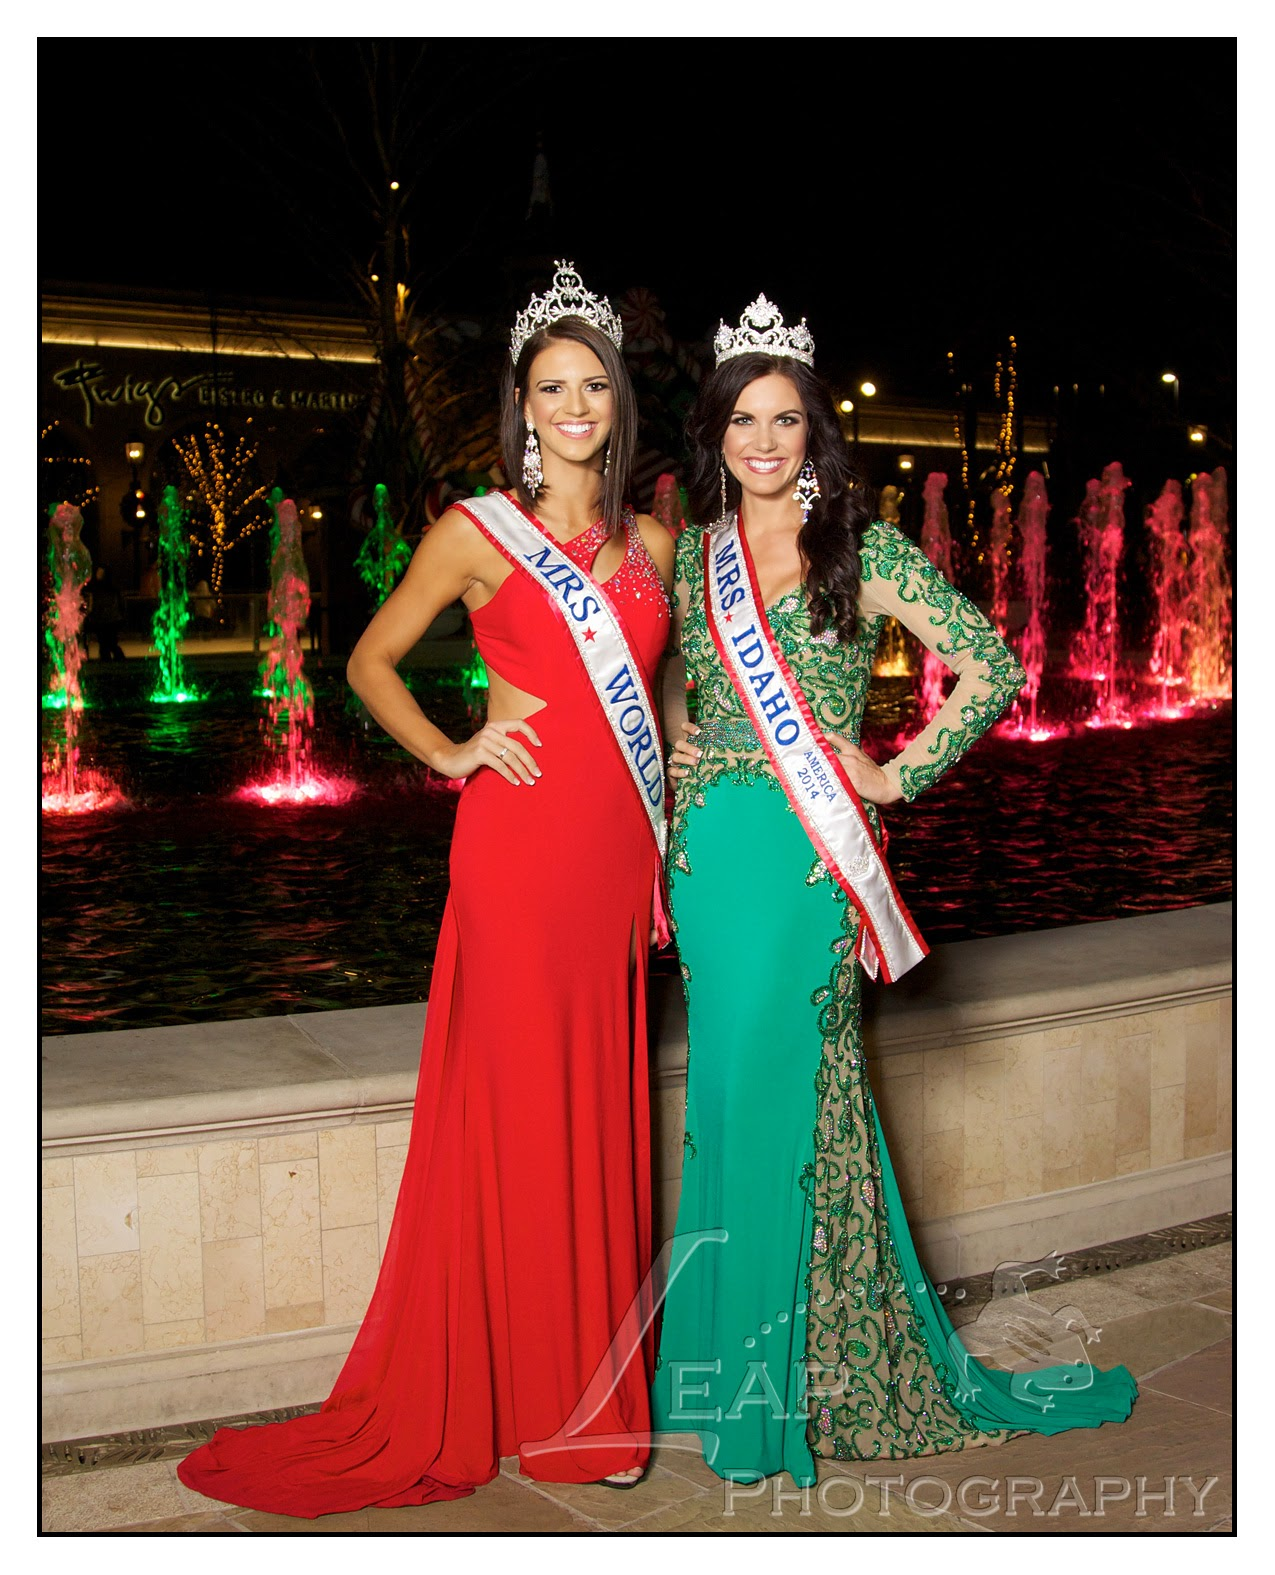 Mrs. Idaho & Mrs. World 2014 in front of water feature